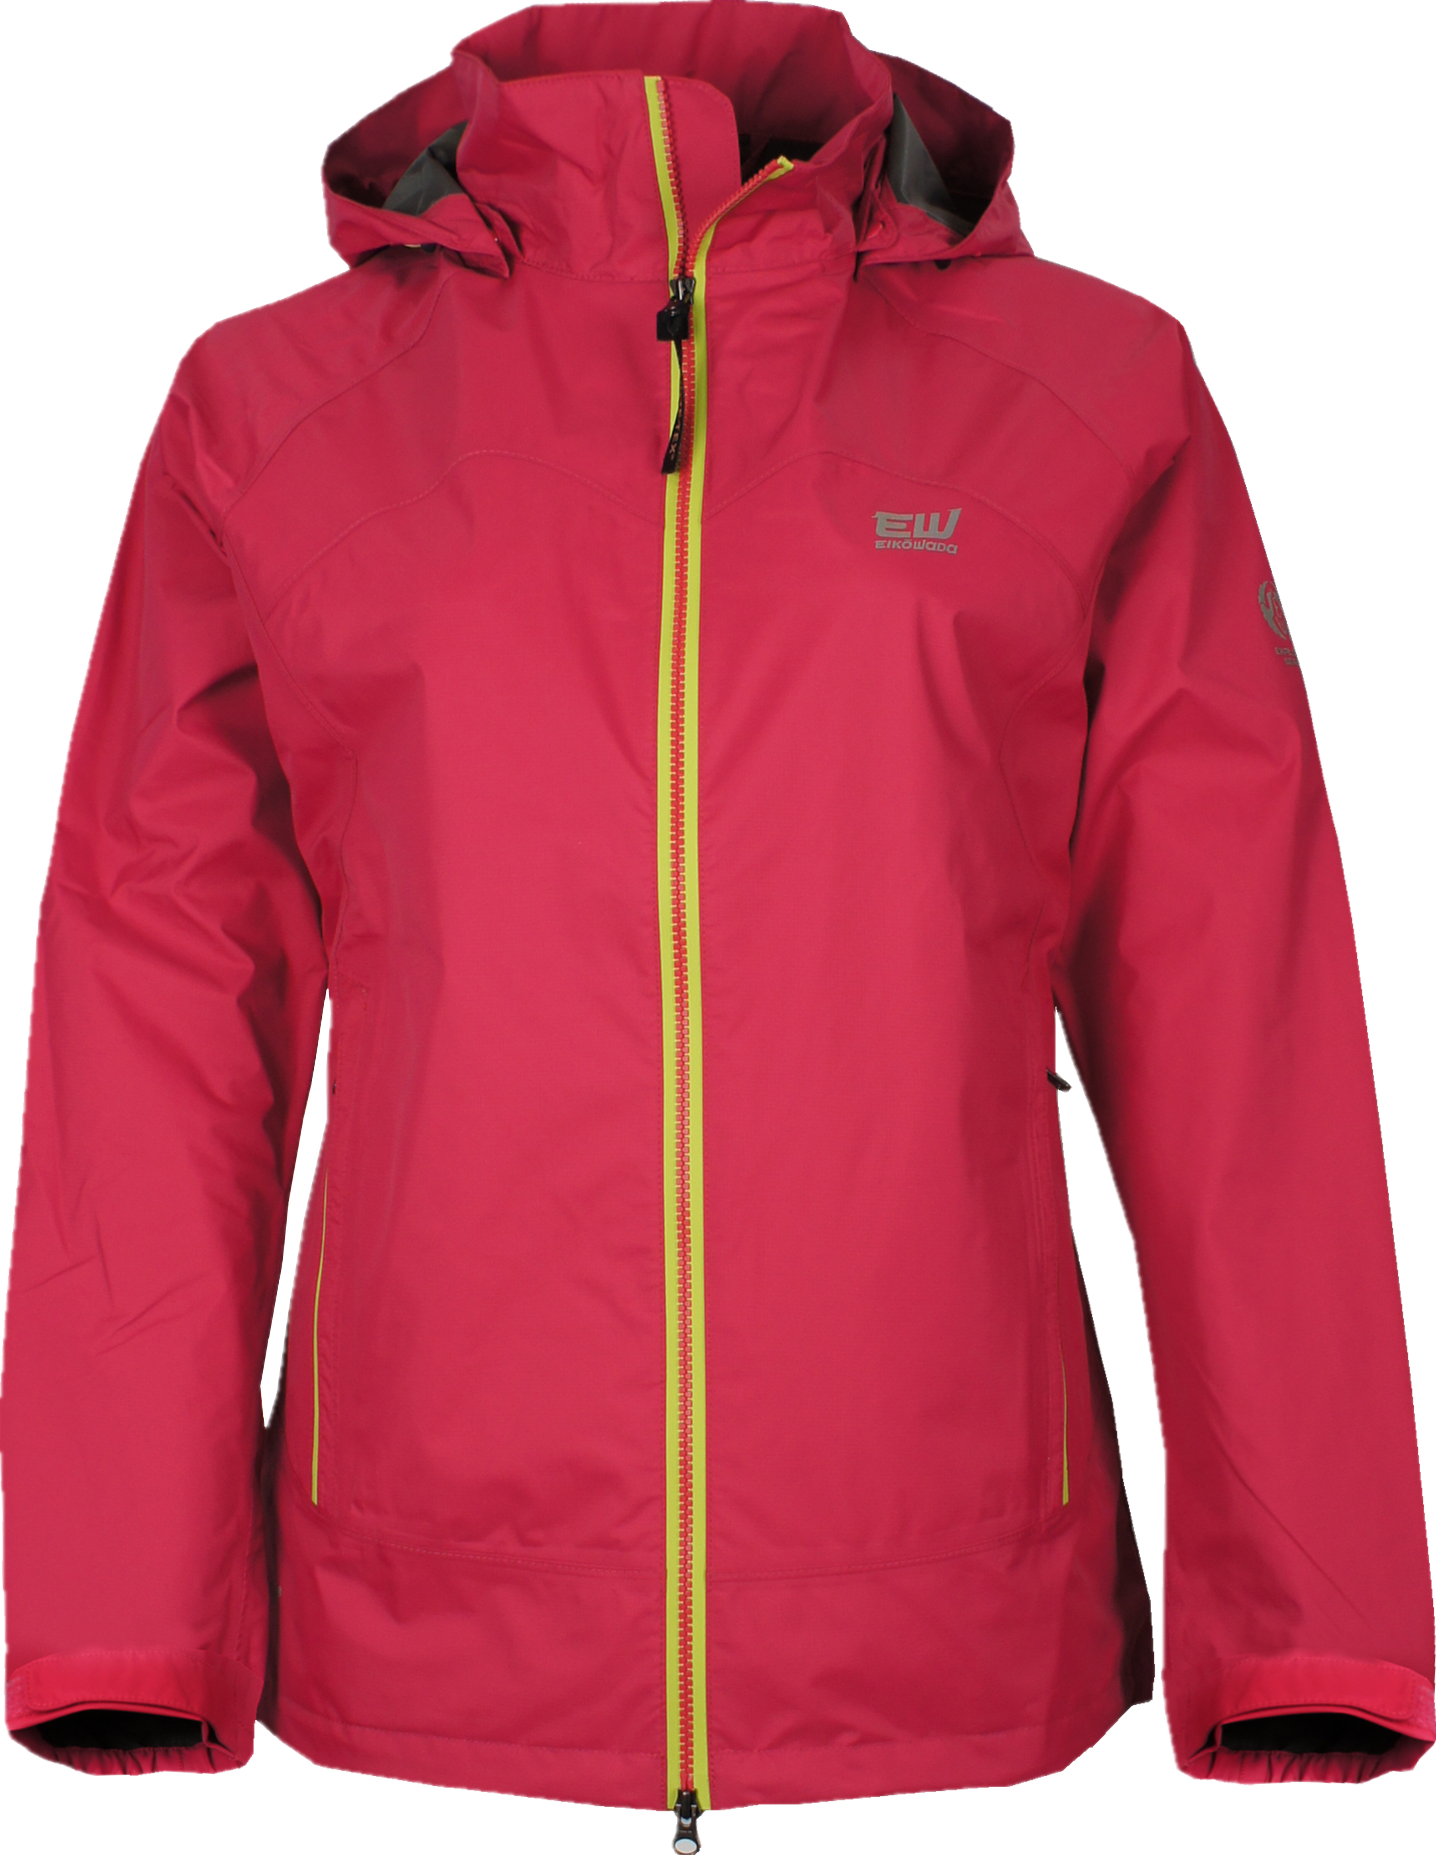 女裝輕量長袖風褸 Gore-tex Paclite Seamed Jacket (Women) 女装轻量长袖风褛